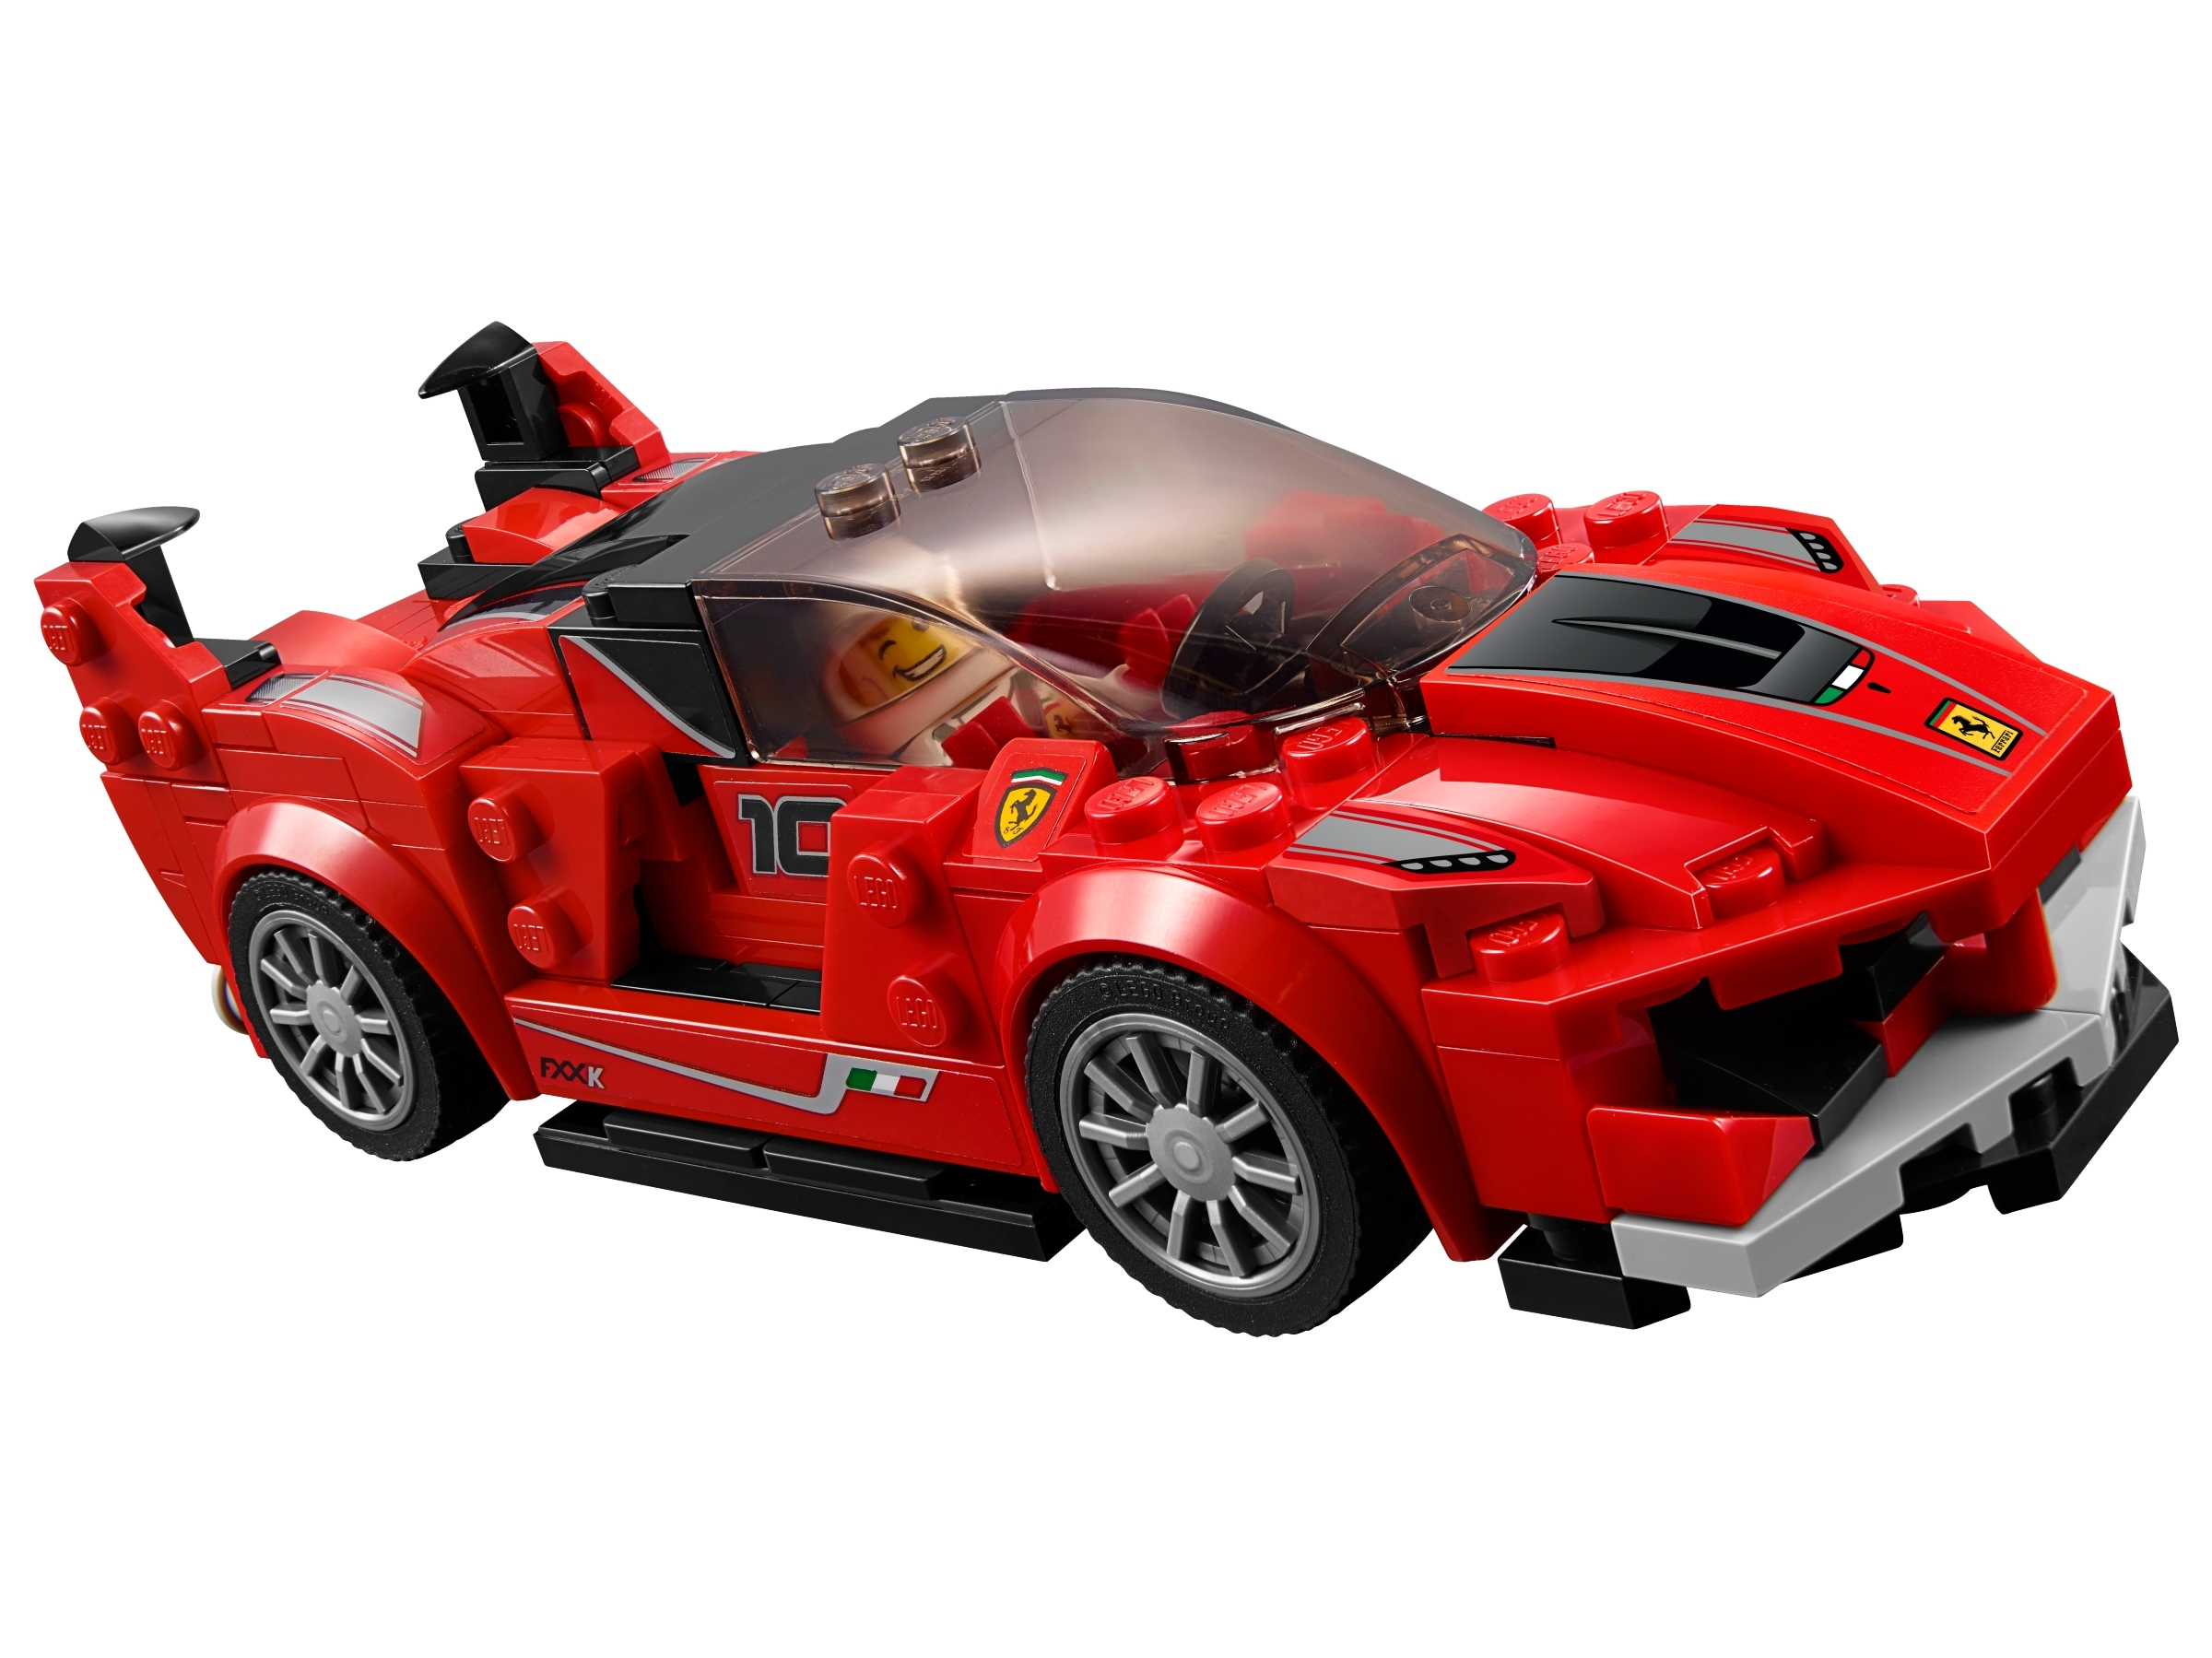 Ferrari Fxx K Development Center 75882 Speed Champions Buy Online At The Official Lego Shop Us